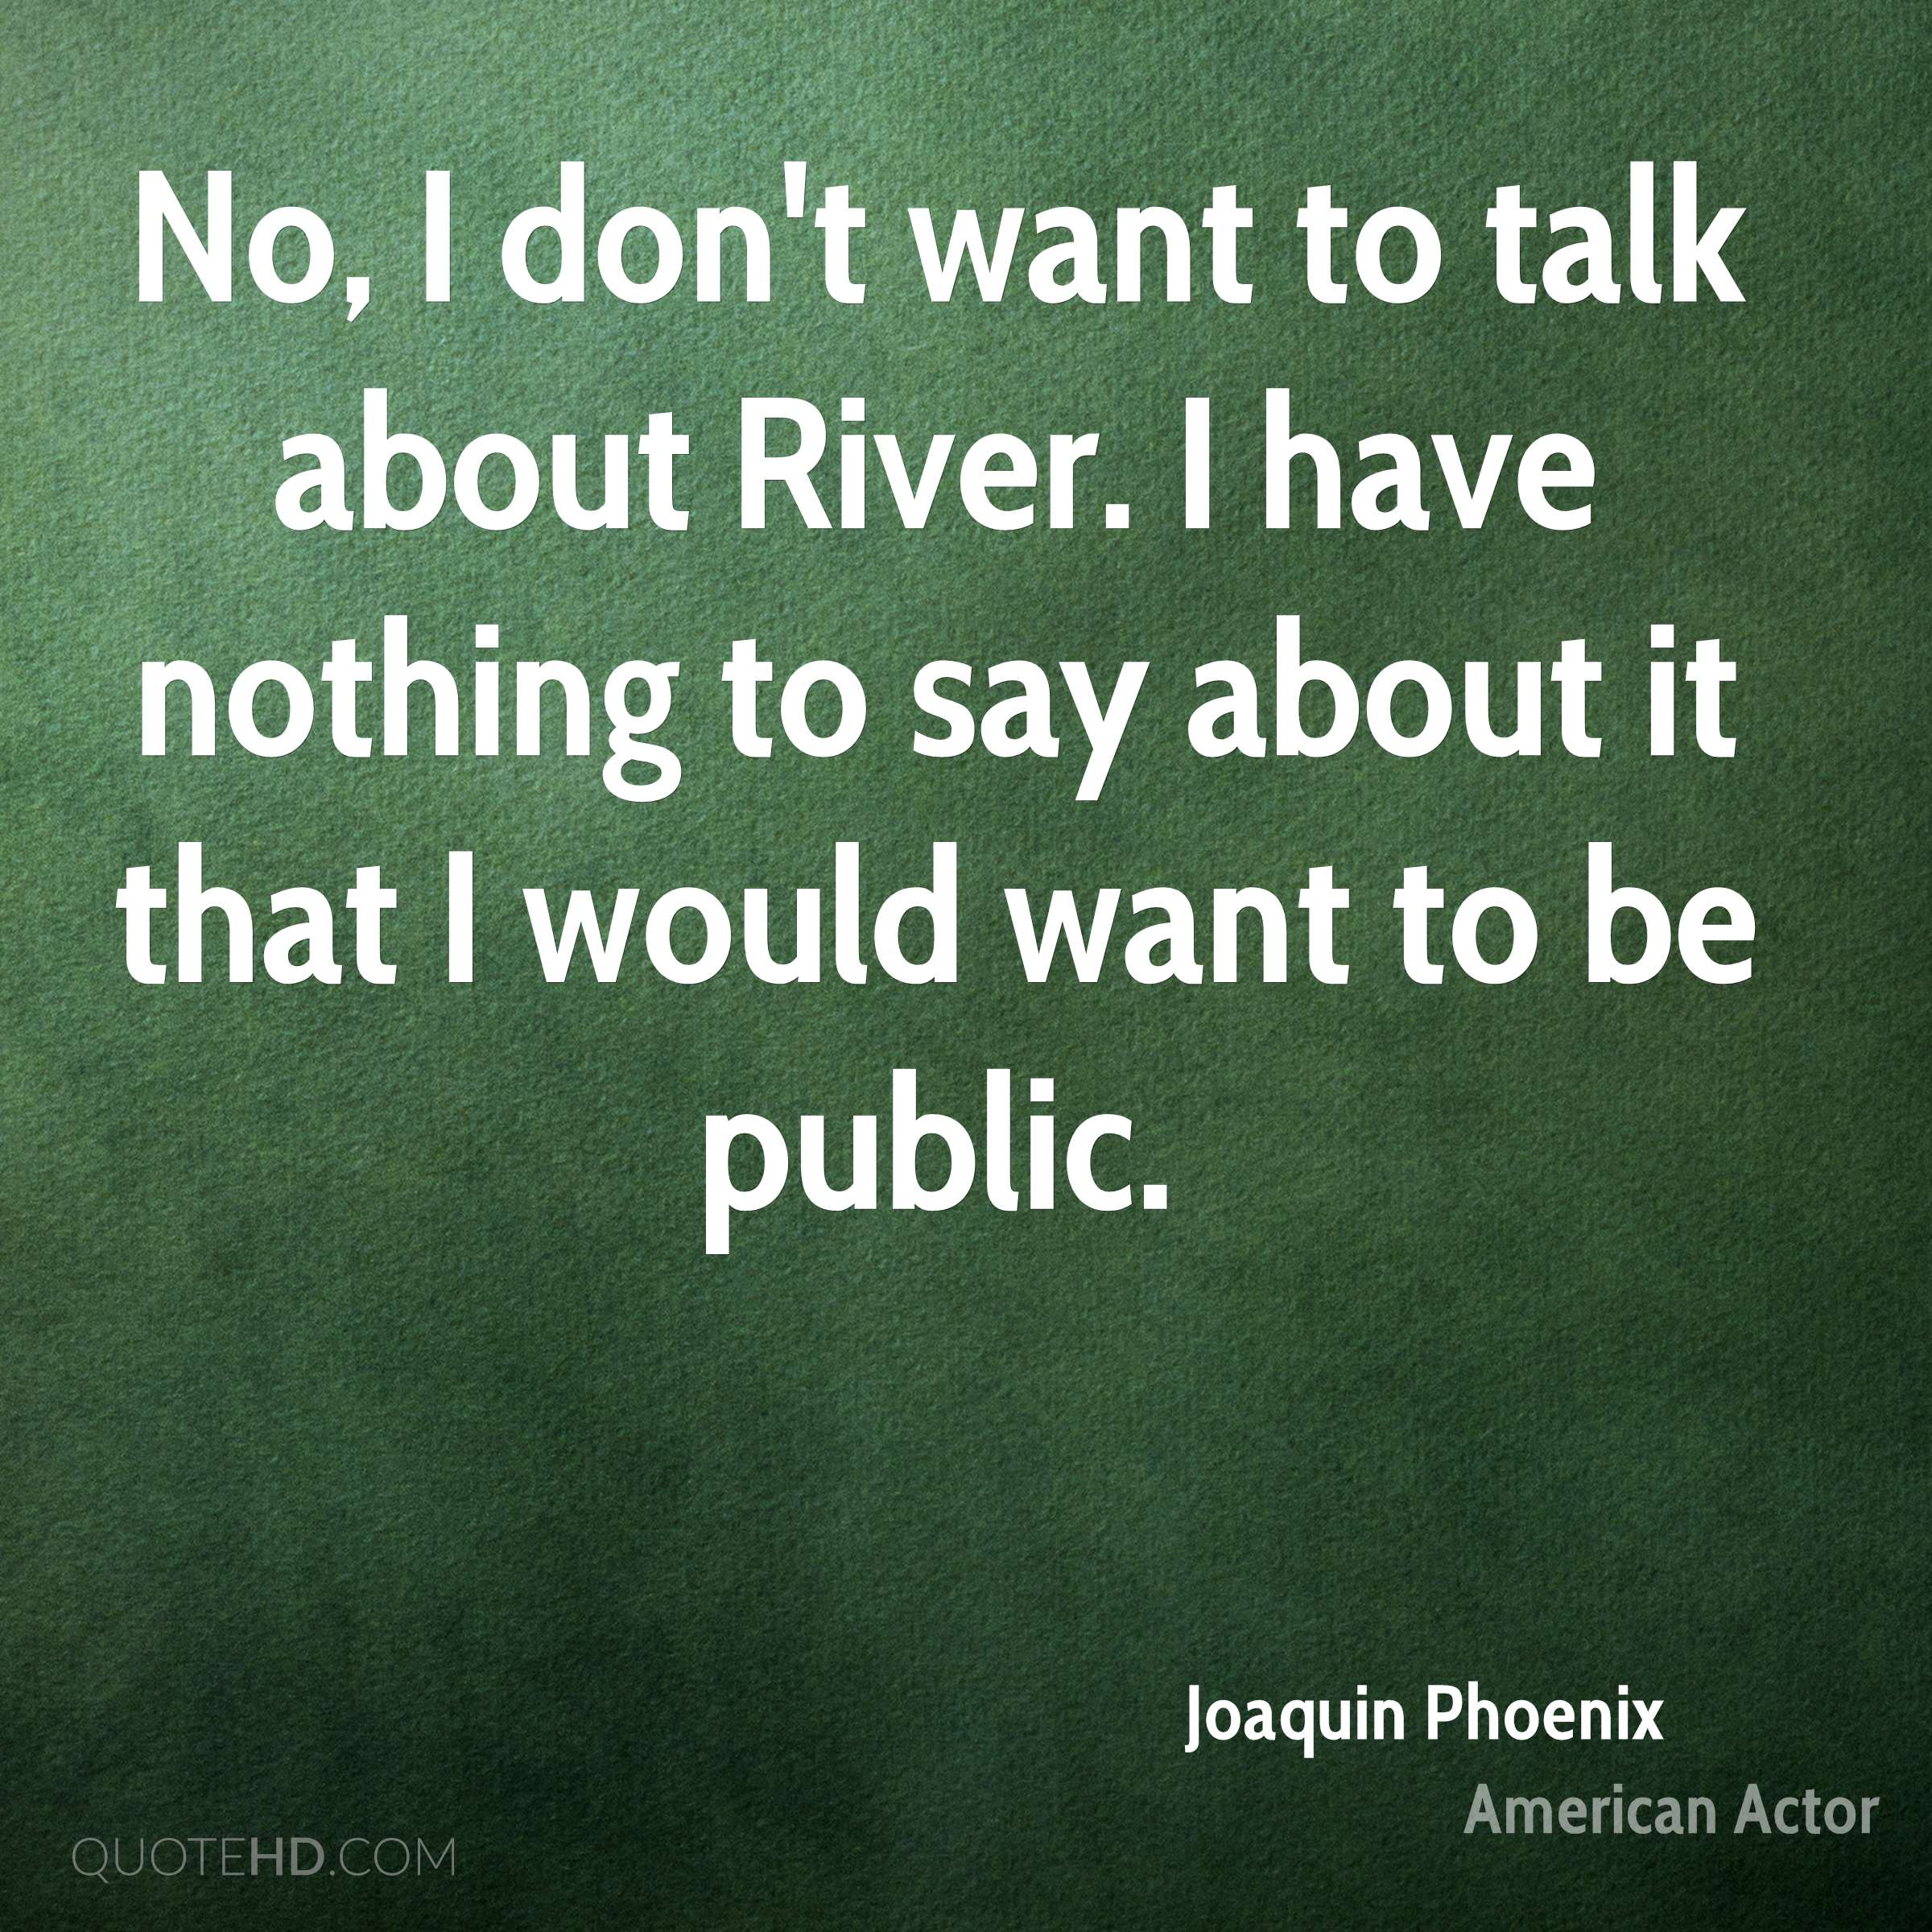 No, I don't want to talk about River. I have nothing to say about it that I would want to be public.